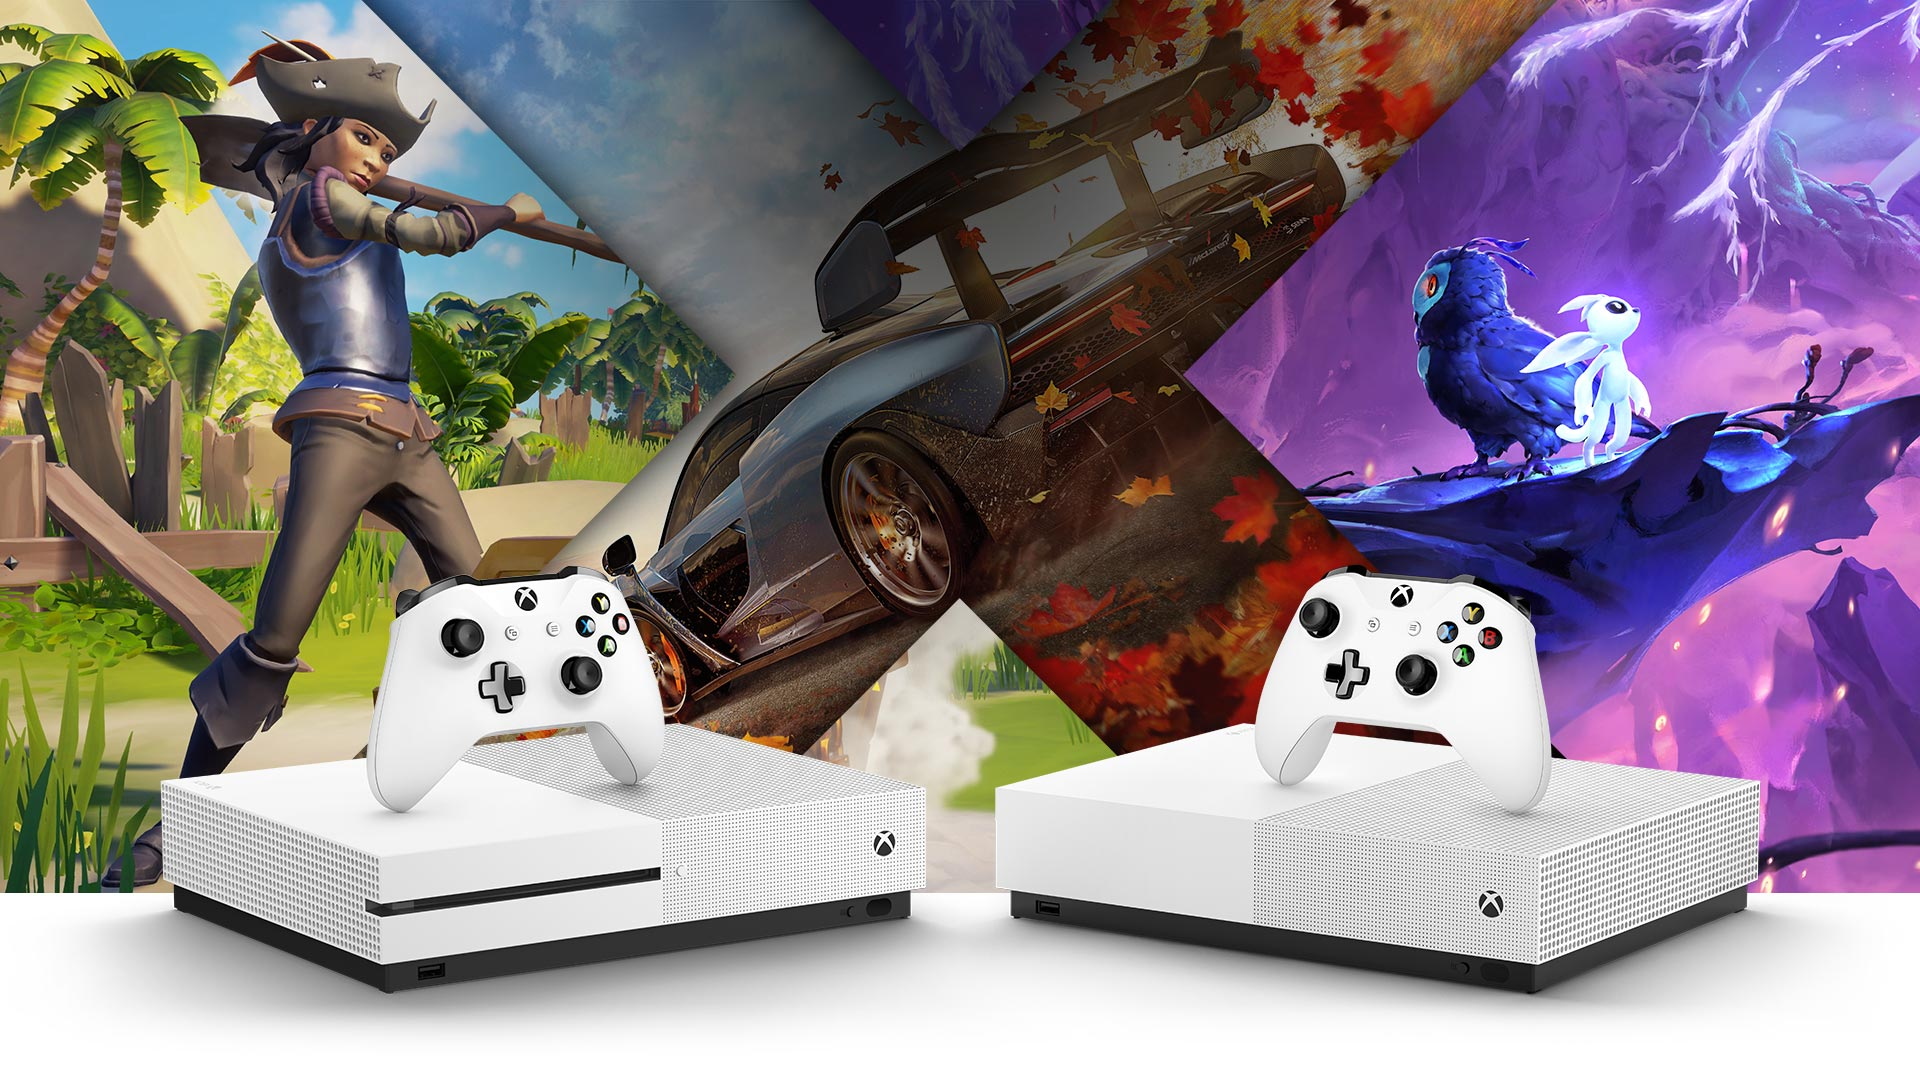 Vorderansicht der Xbox One S und der Xbox One S All Digital Edition, umgeben von Bildern von Sea of Thieves, Forza Horizon 4, Ori and the Will of Wisps